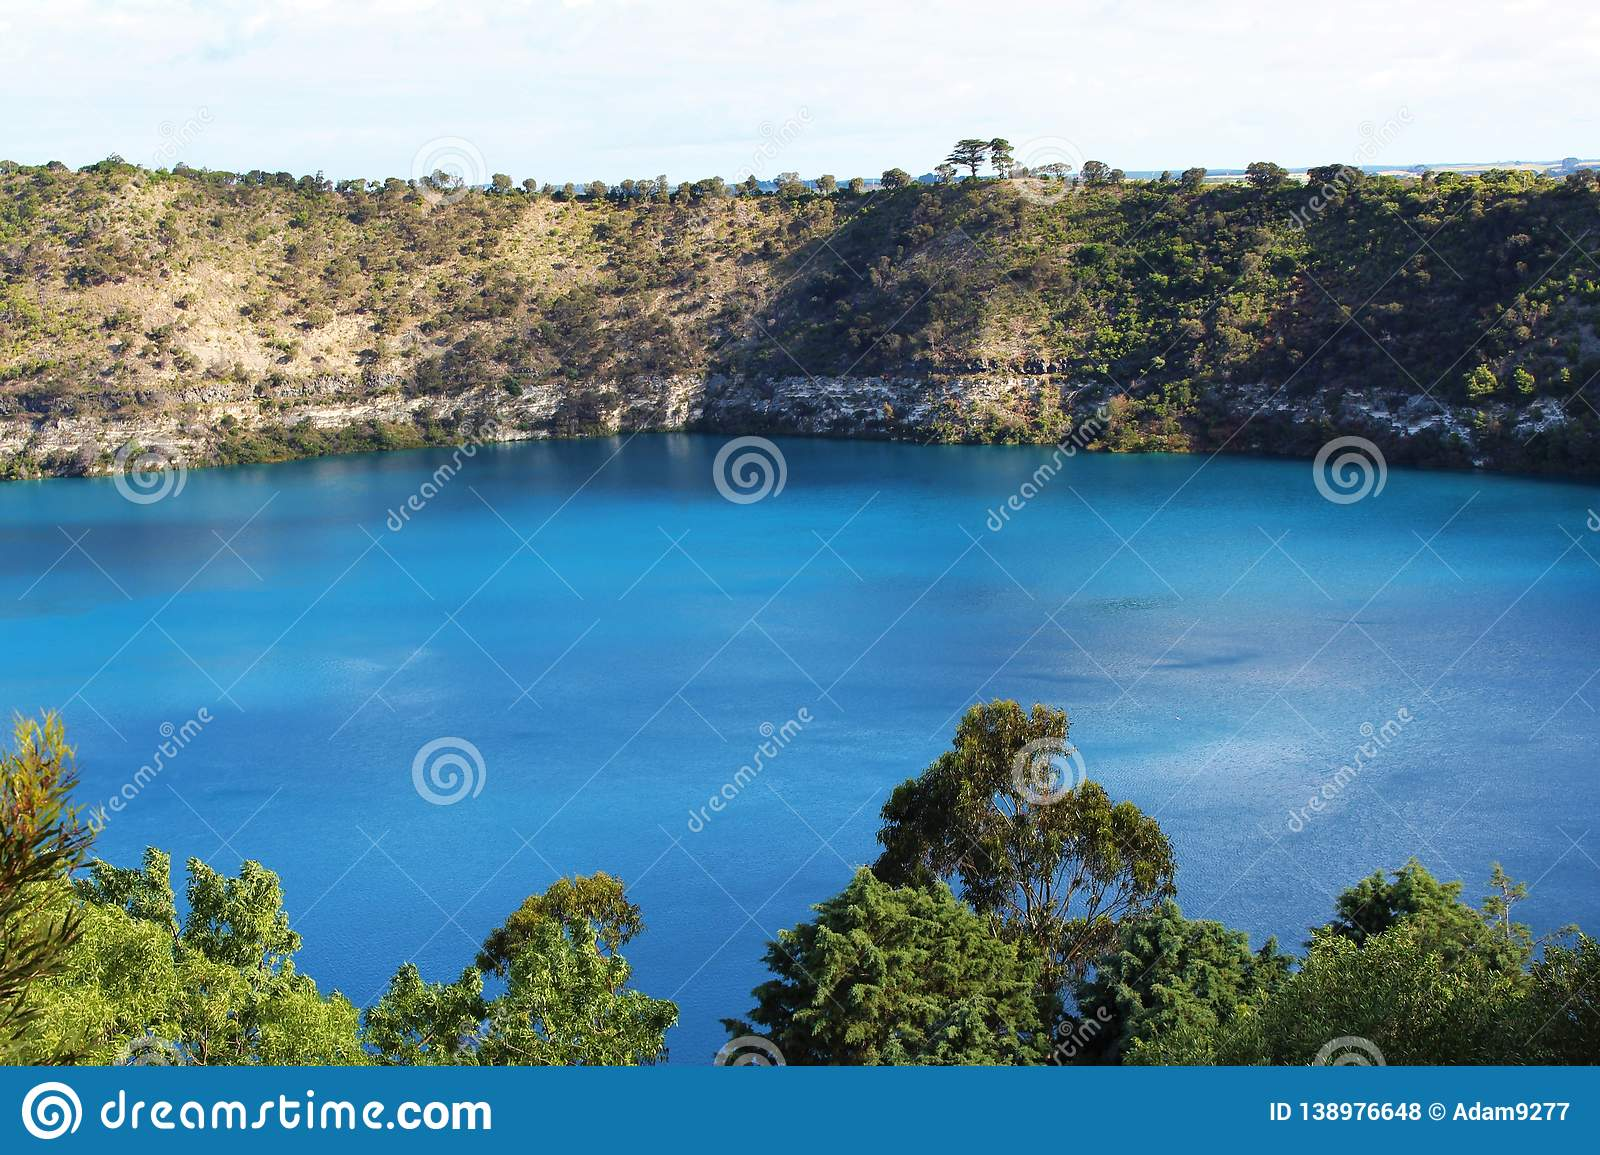 Stunning blue lake at Mount Gambier, Australia. Beautiful natural blue lake at Mount Gambier, Australia. Pure blue lake surrounded by cliffs with trees and royalty free stock photos